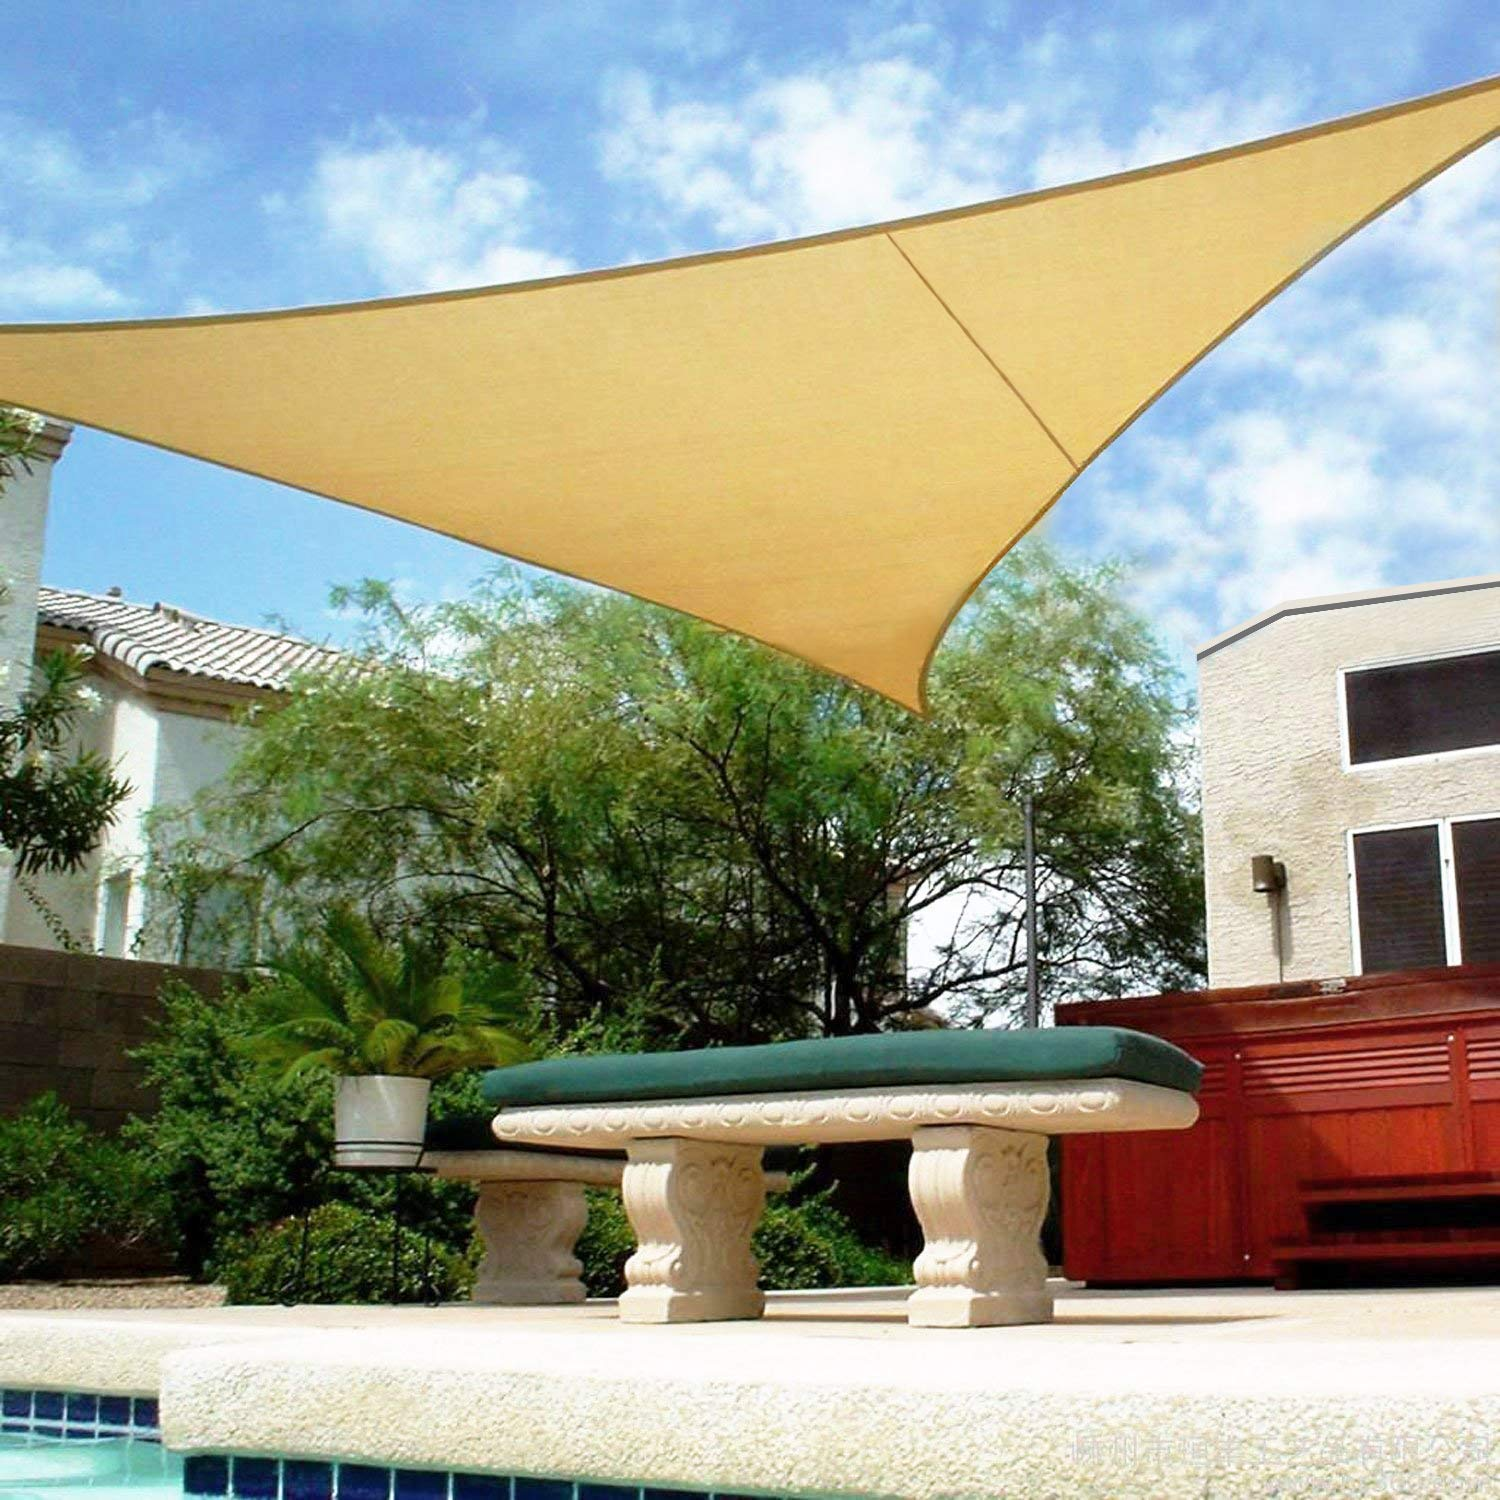 Shade&Beyond 16' x 16' x 16' Sand Color Triangle Sun Shade Sail for Patio UV Block for Outdoor Facility and Activities by Shade&Beyond